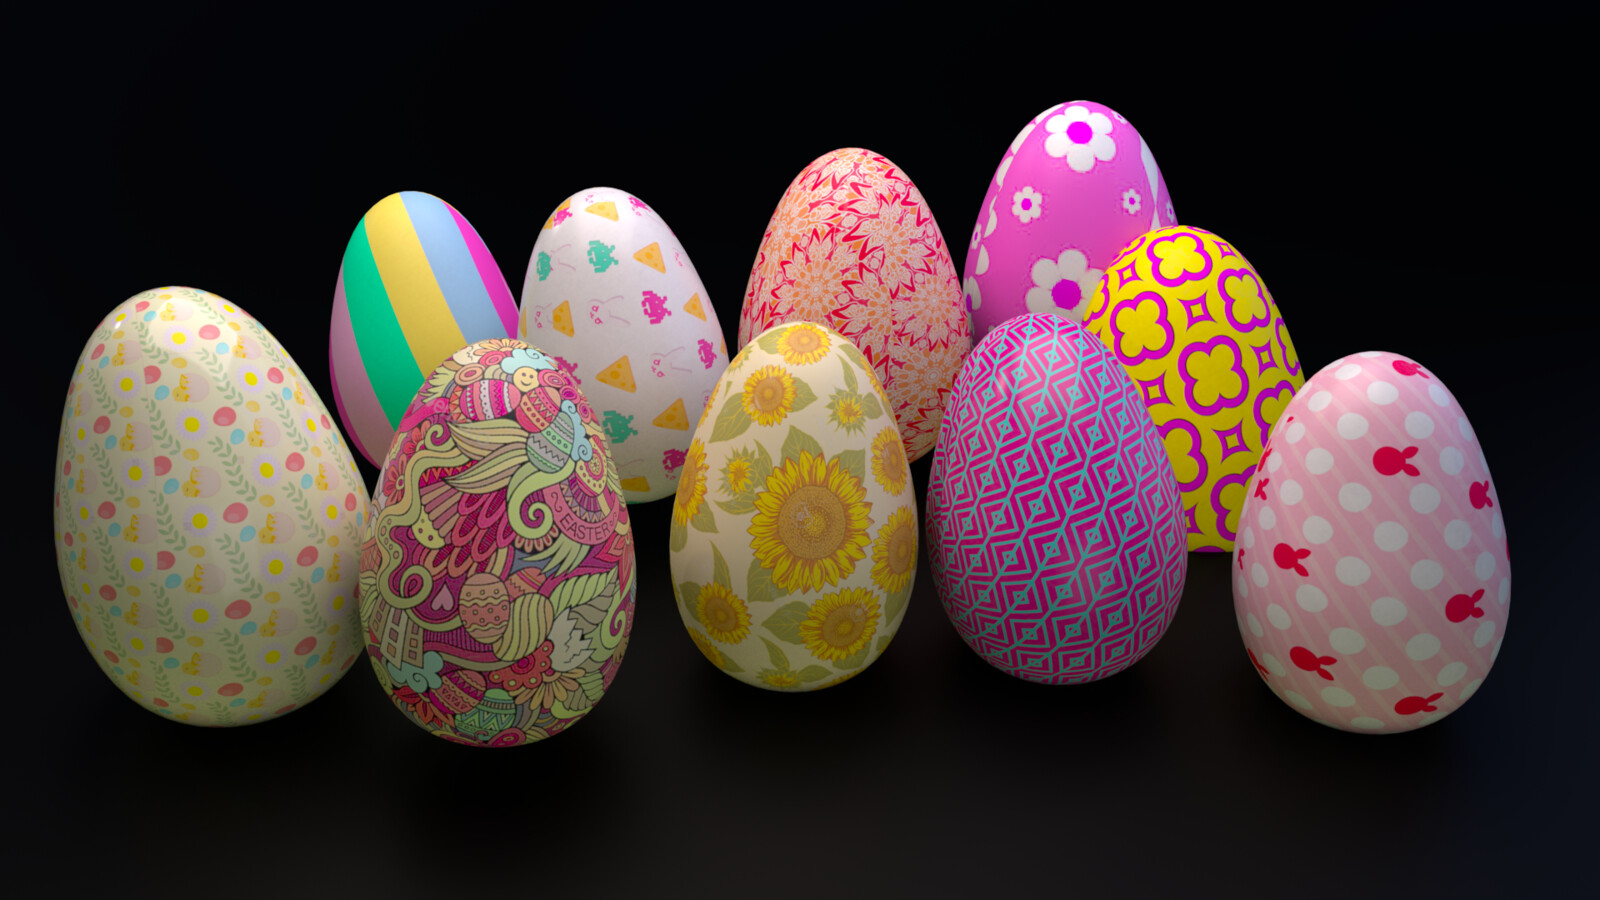 Variation of Easter eggs. Modeled and hand painted.